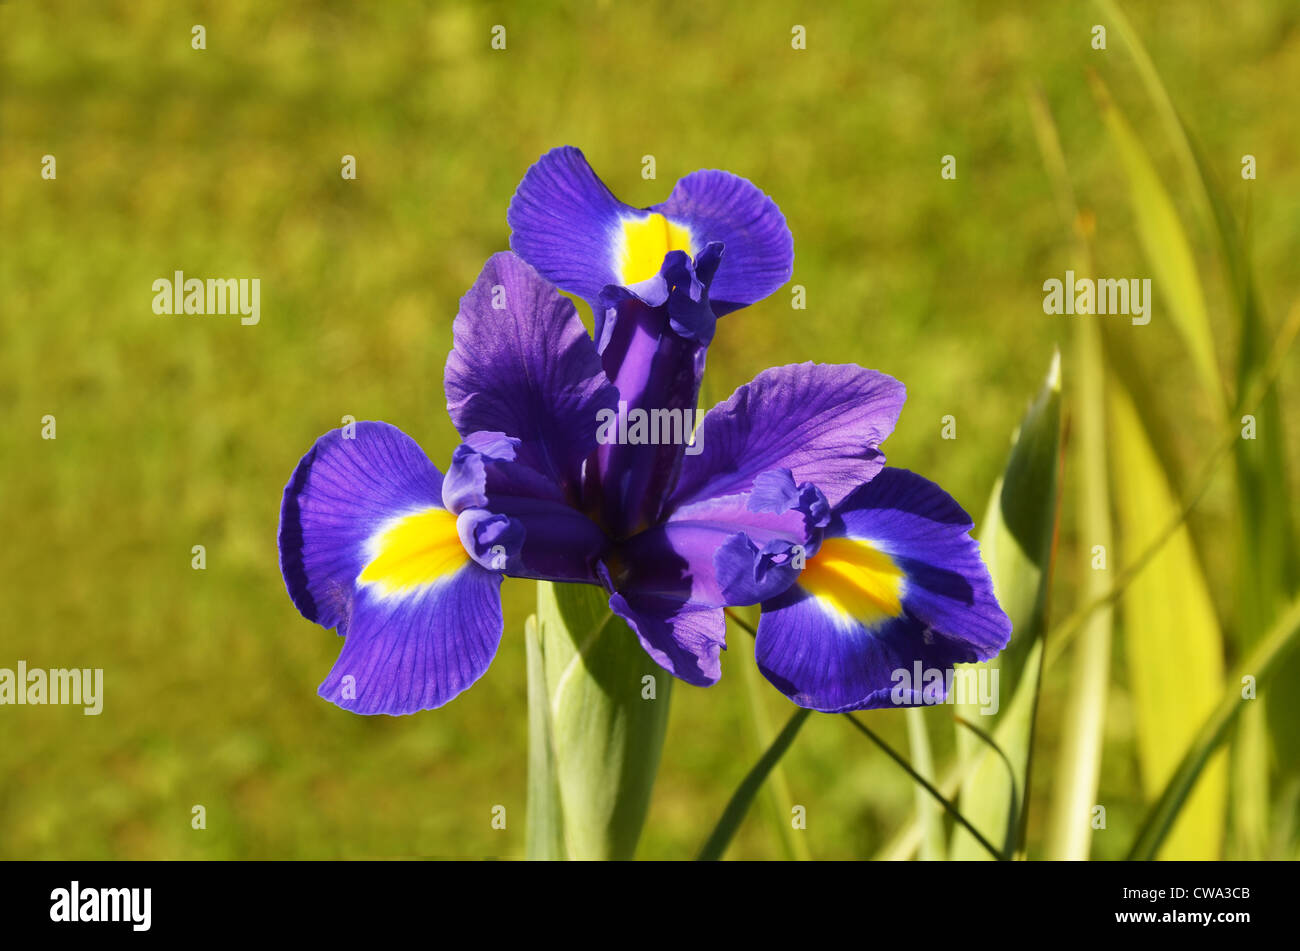 Bearded Lily Flower Flowers Stock Photos Bearded Lily Flower